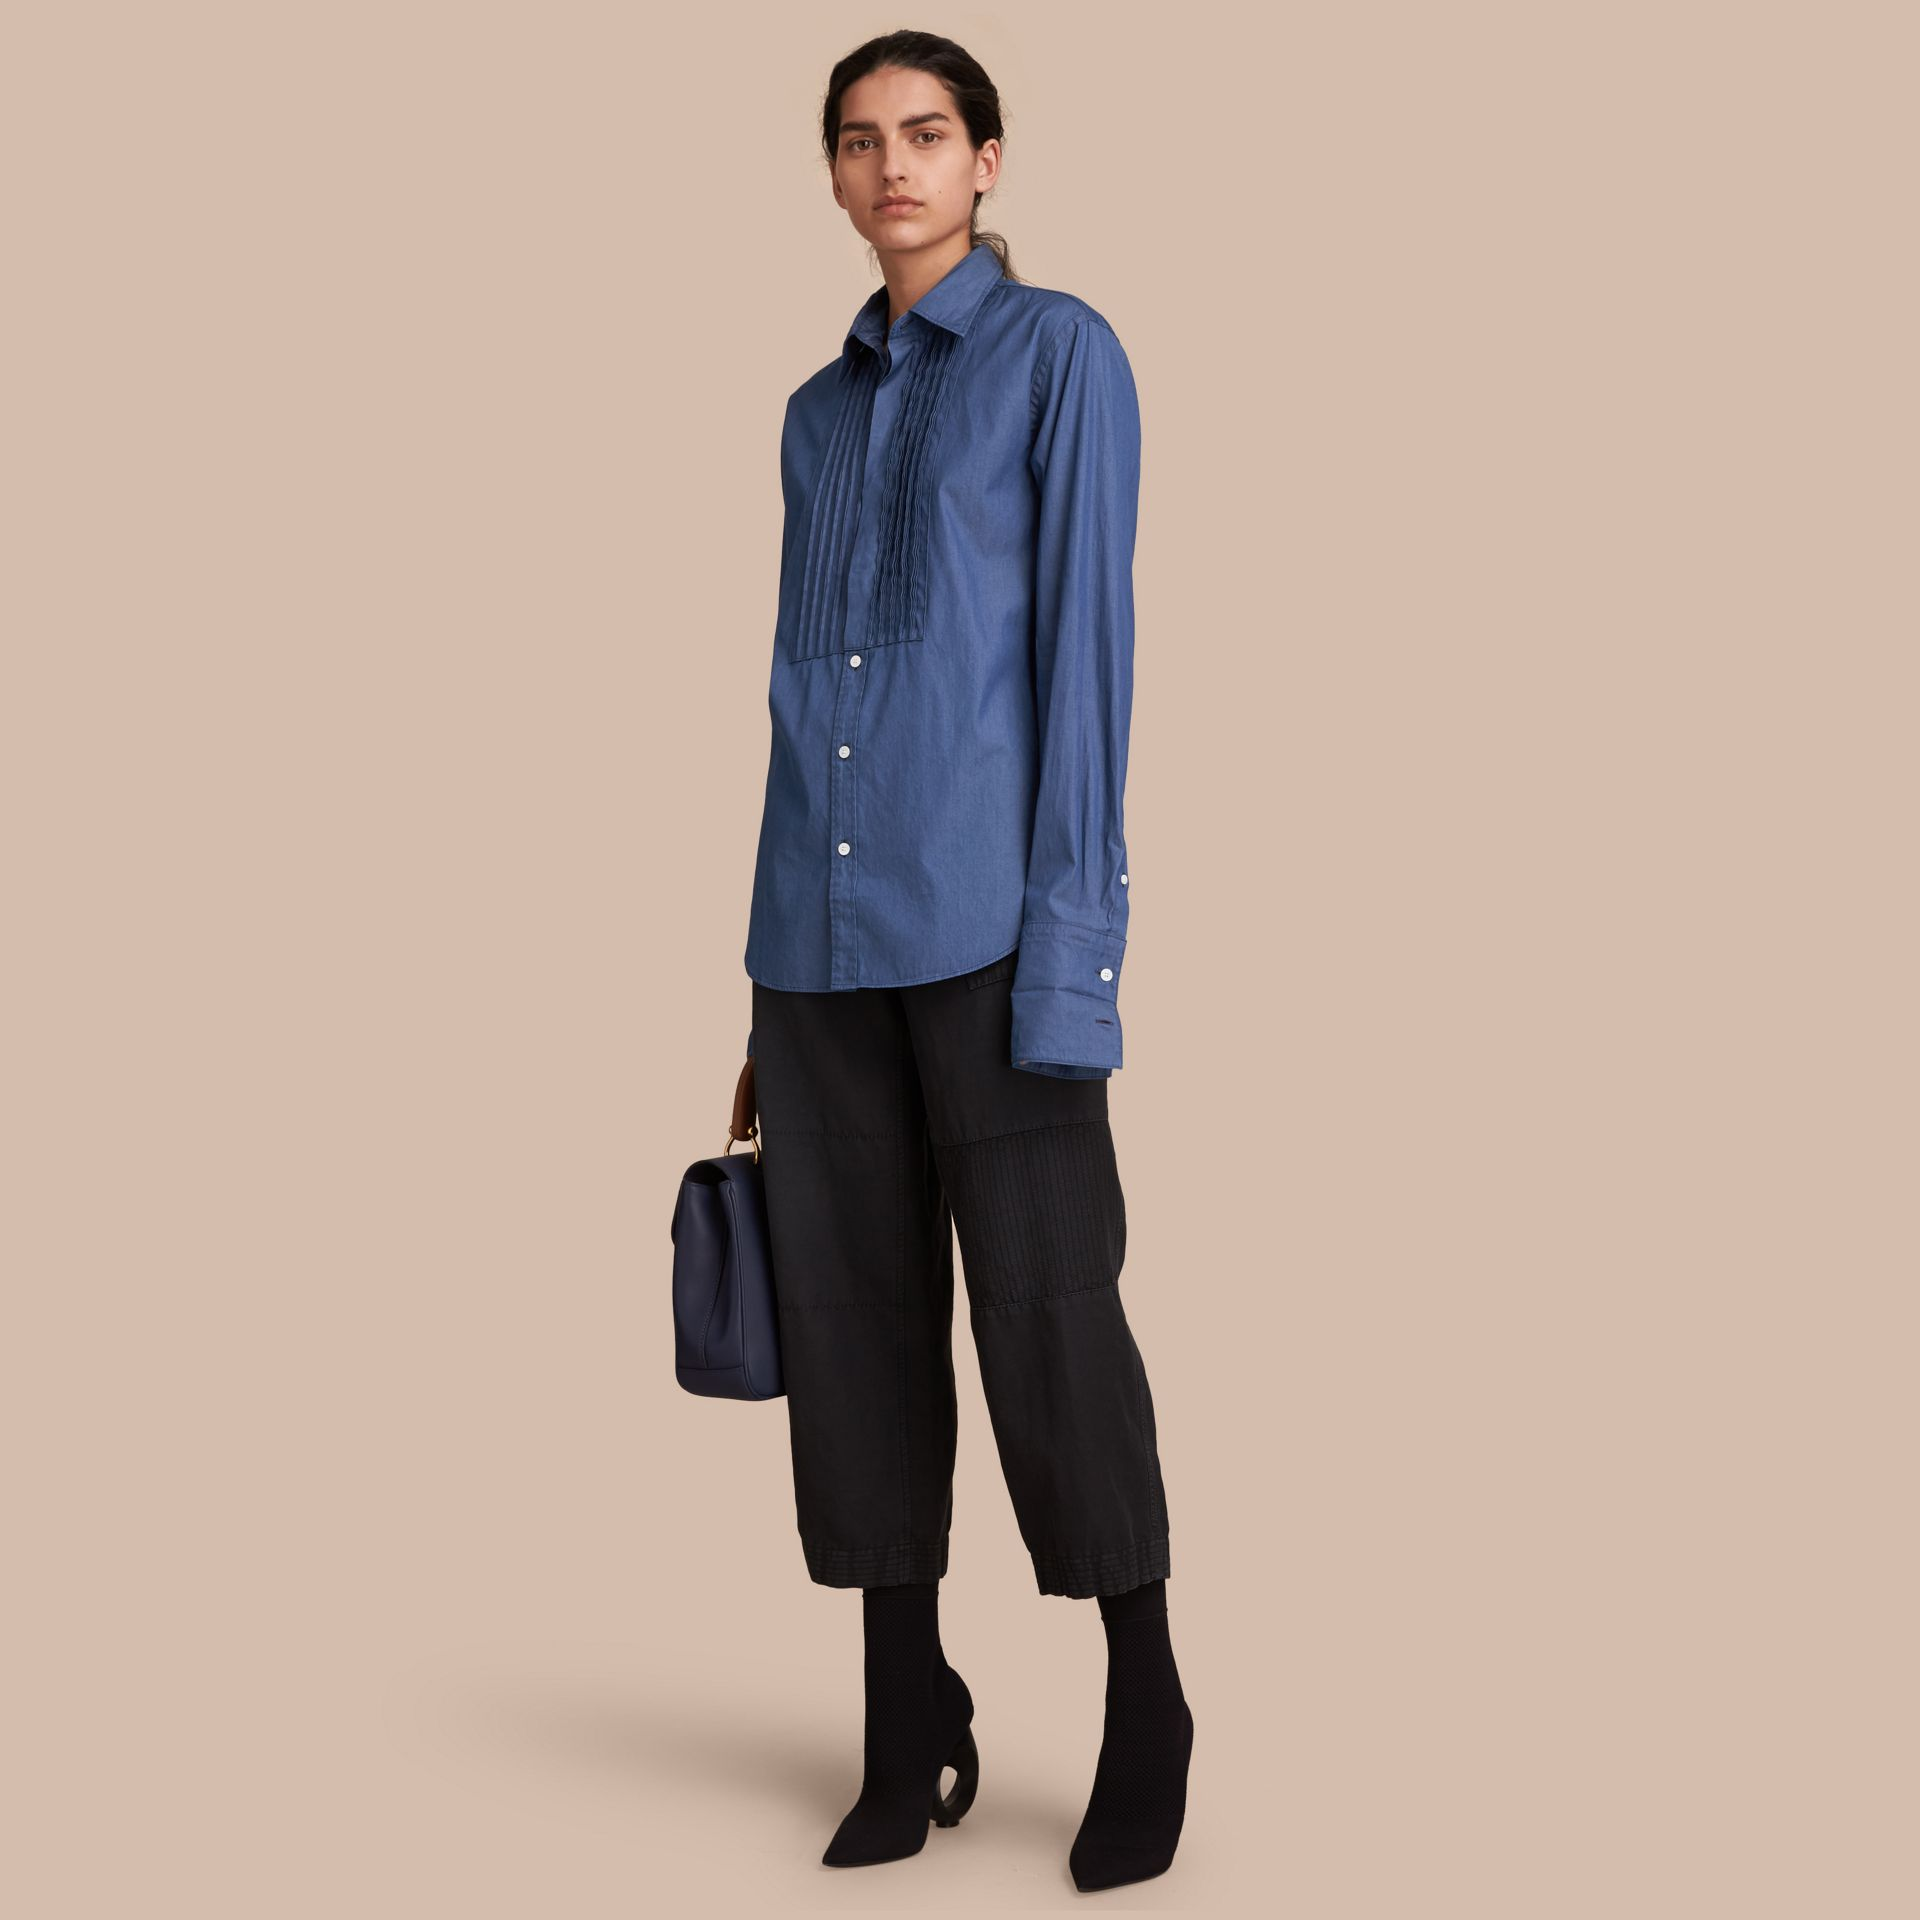 Unisex Double-cuff Pintuck Bib Cotton Shirt in Denim Blue - Women | Burberry Singapore - gallery image 1